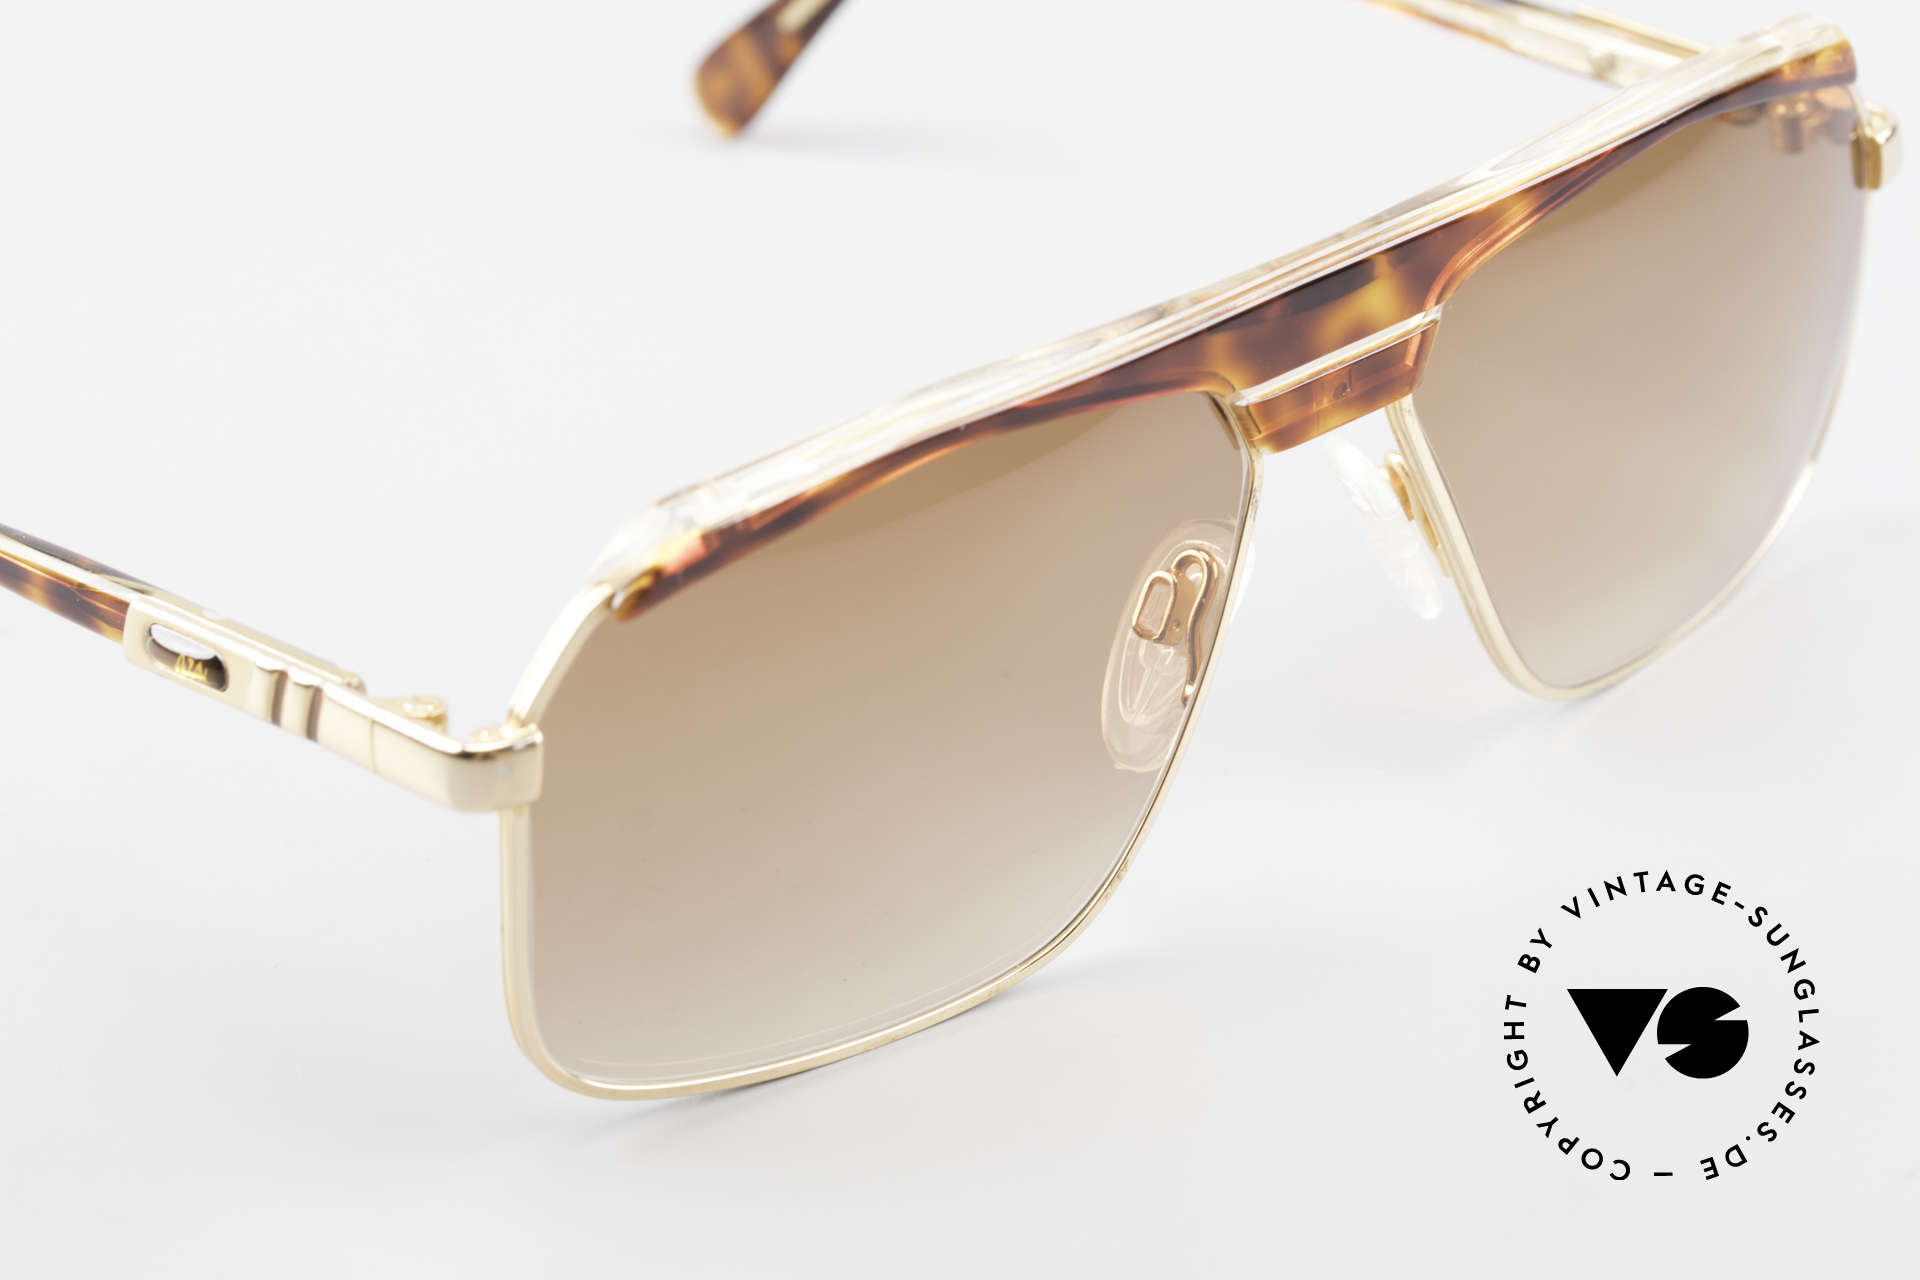 Cazal 730 80's West Germany Sunglasses, new old stock (like all our Cazal vintage shades), Made for Men